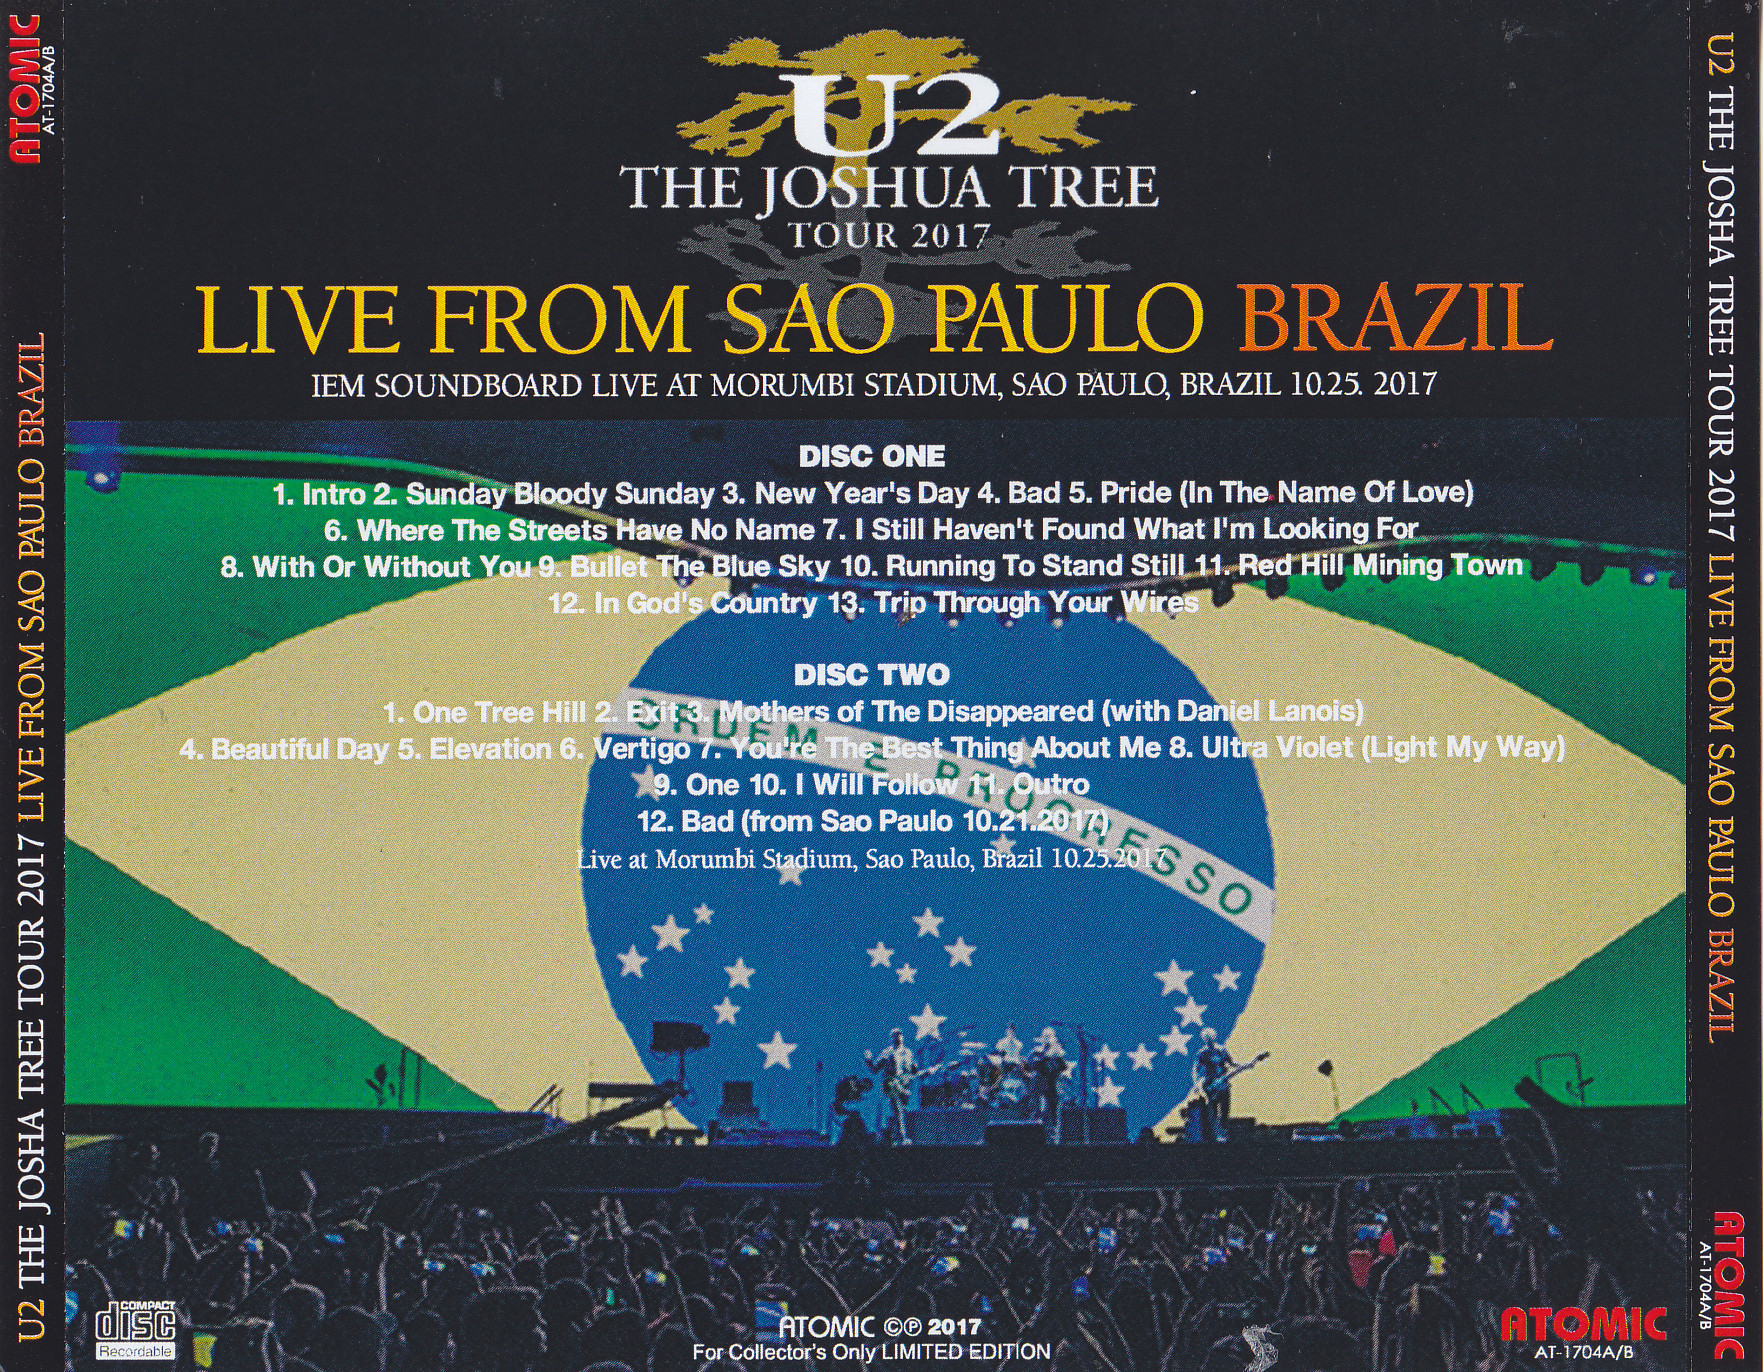 U2 - The Joshua Tree Tour 2017: Live From Sao Paulo Brazil ( 2Pro-CDR )  Atomic  AT-1704AB